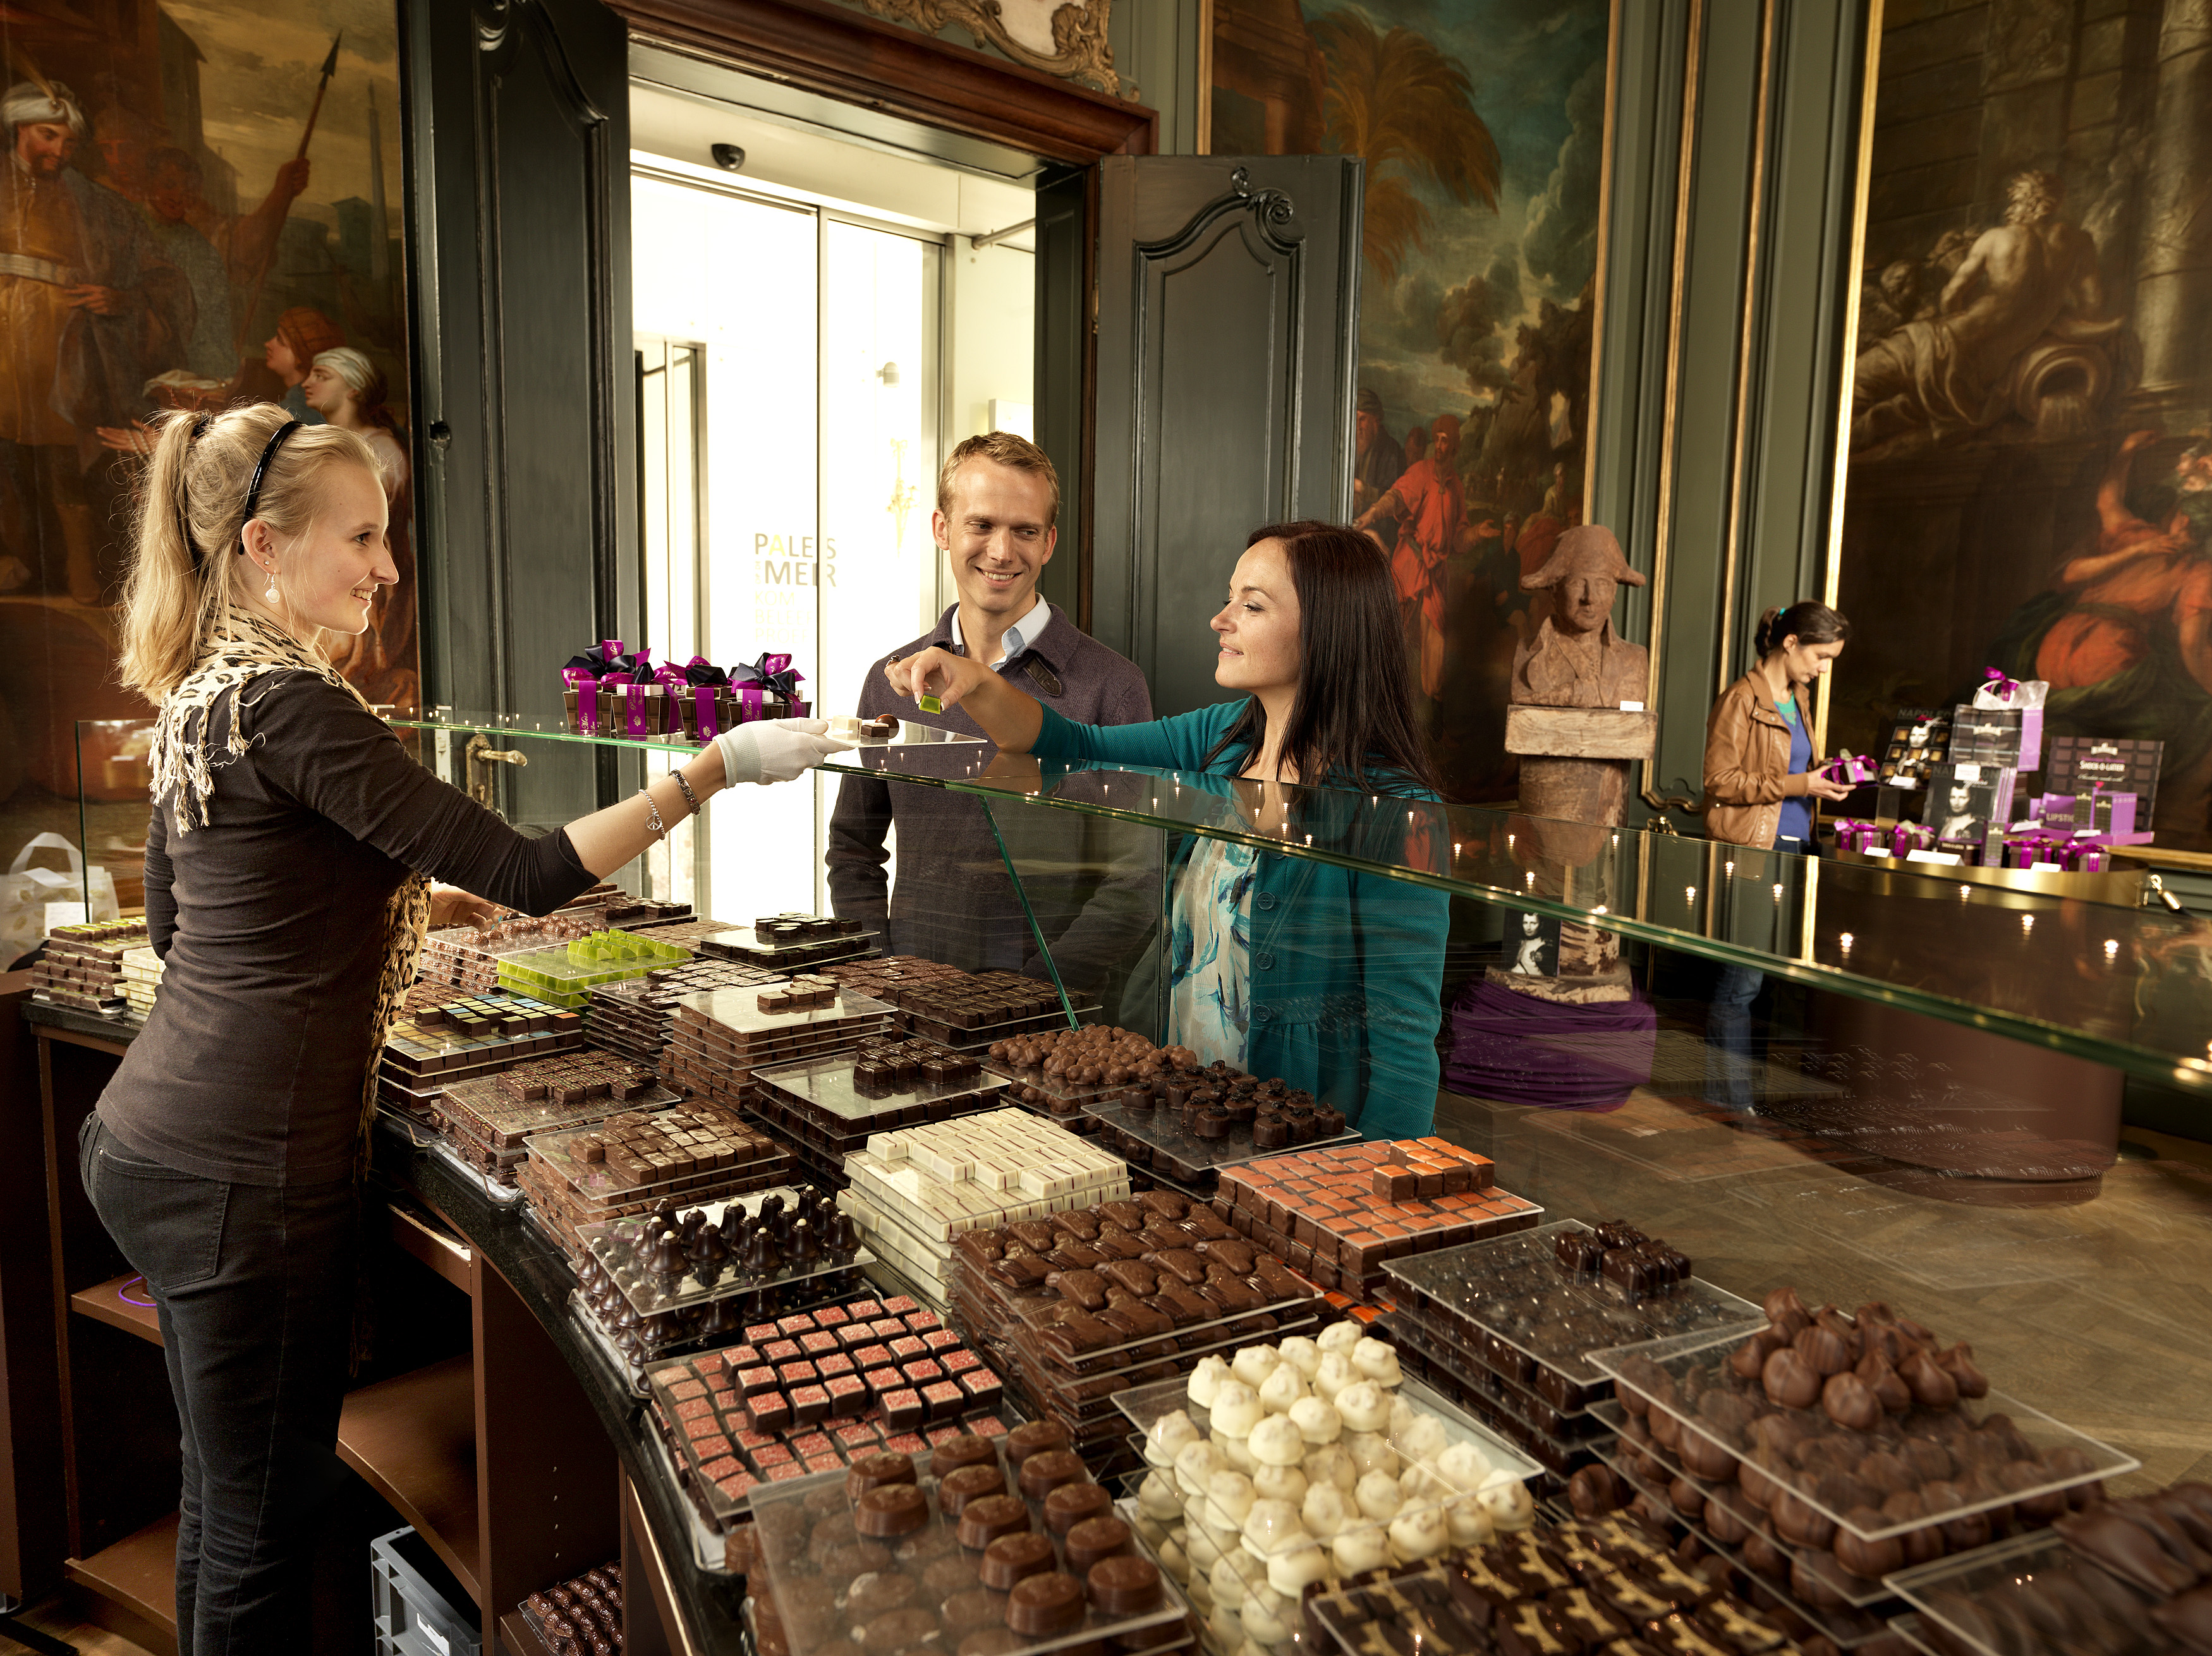 Did you know that Brussels Airport is the world's biggest chocolate shop?